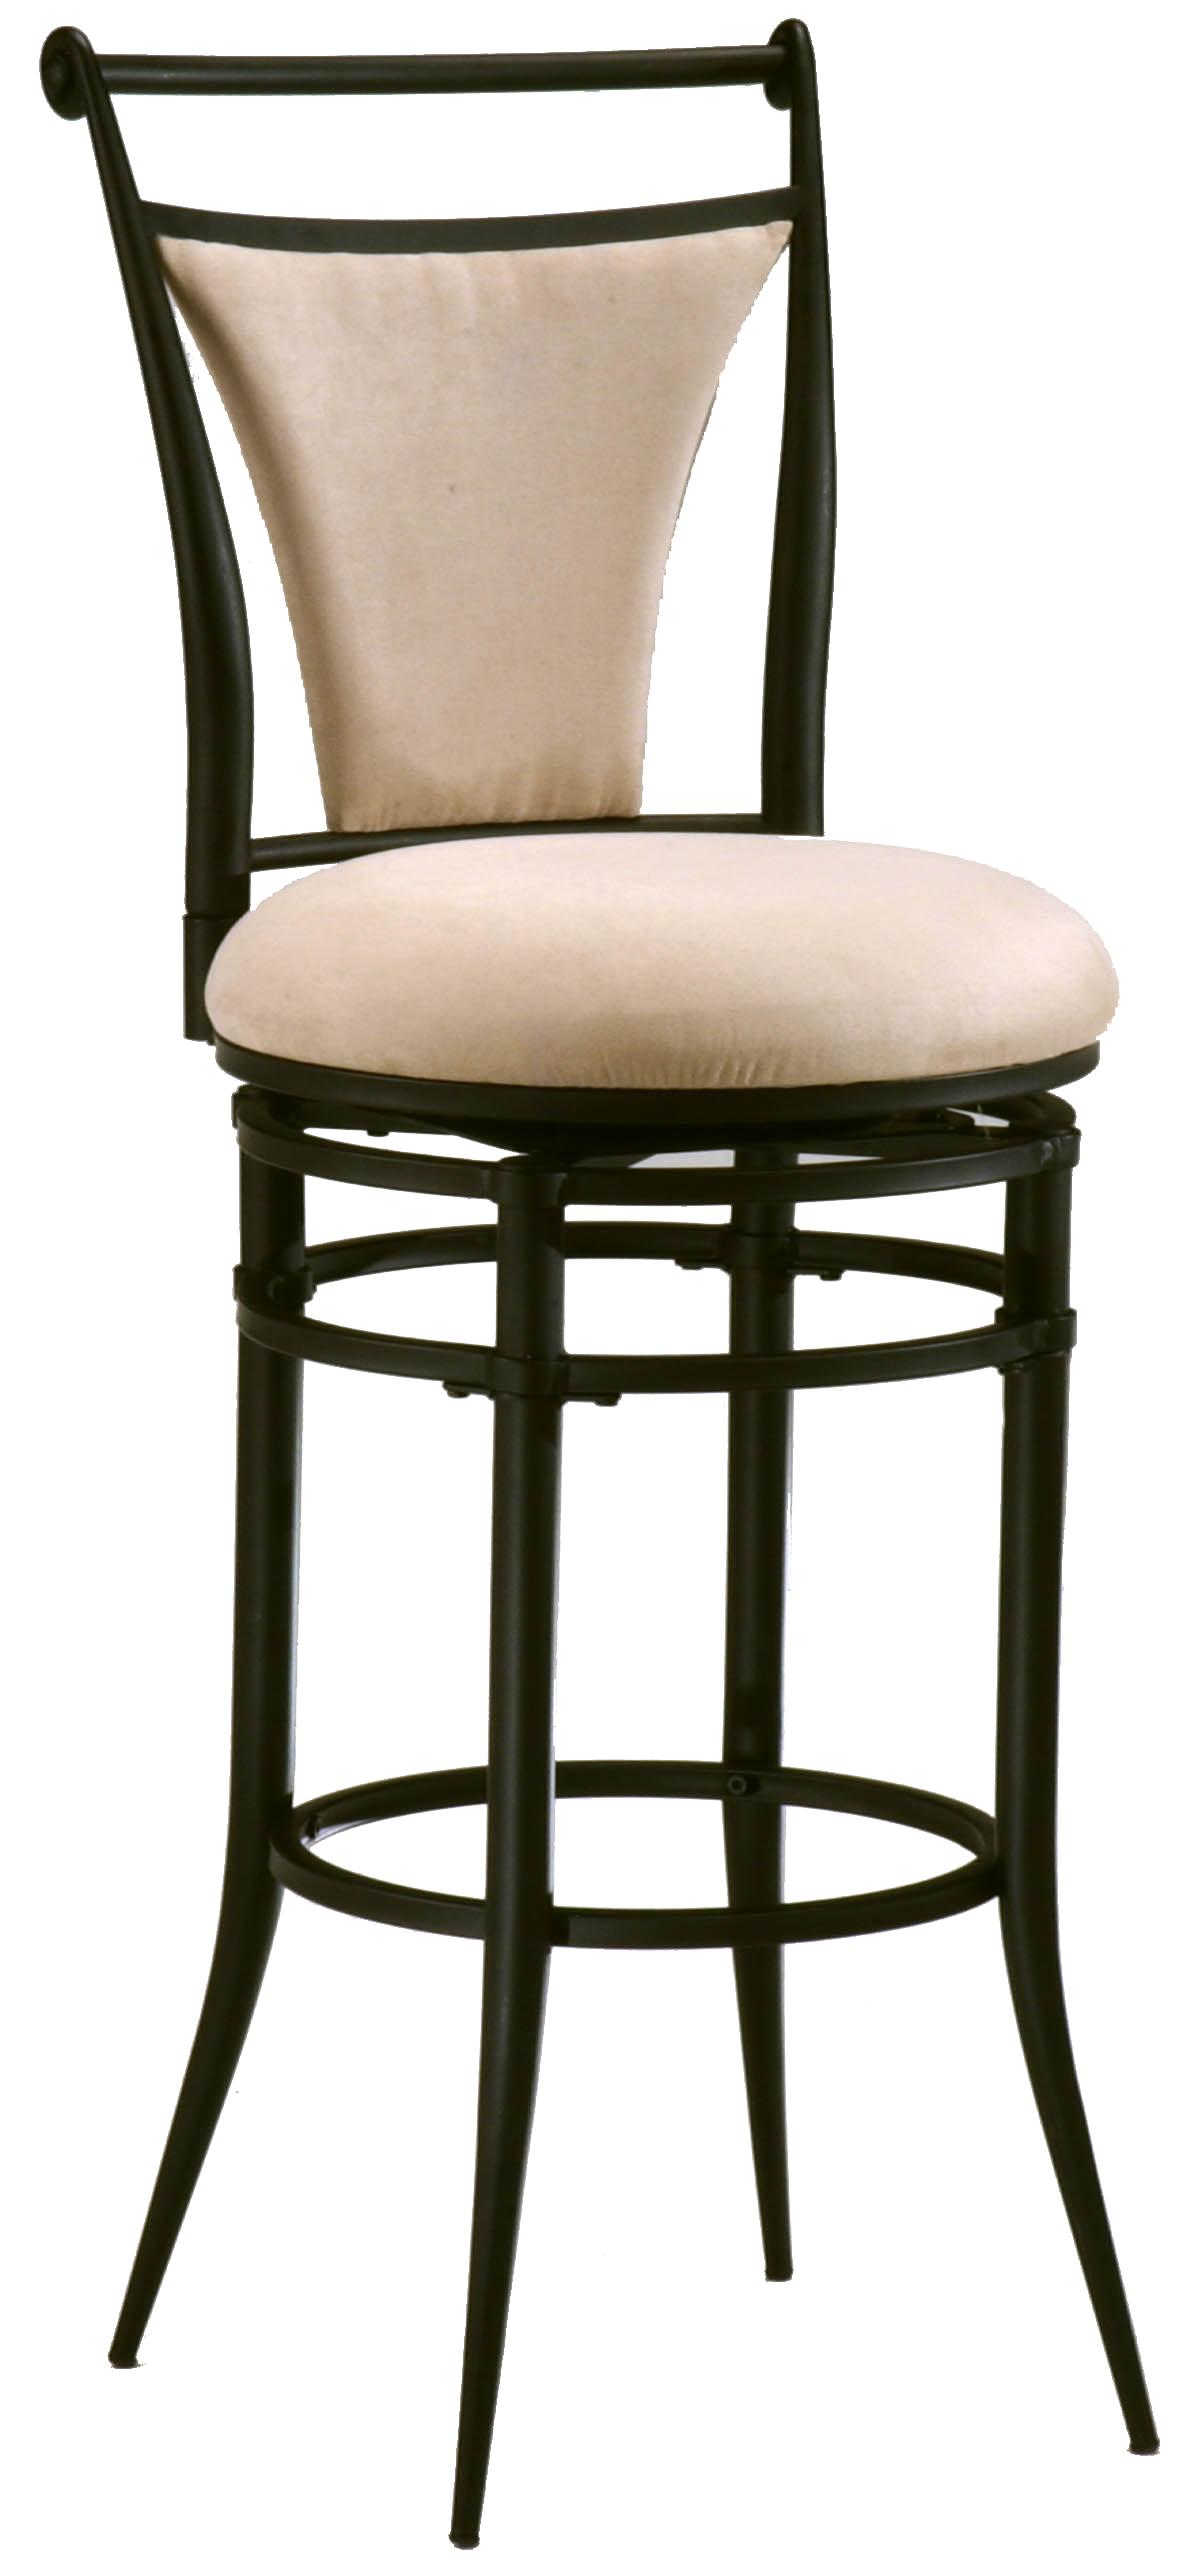 "Hillsdale Metal Stools 30"" Bar Height Fawn Cierra Stool  - Item Number: 4592-837"